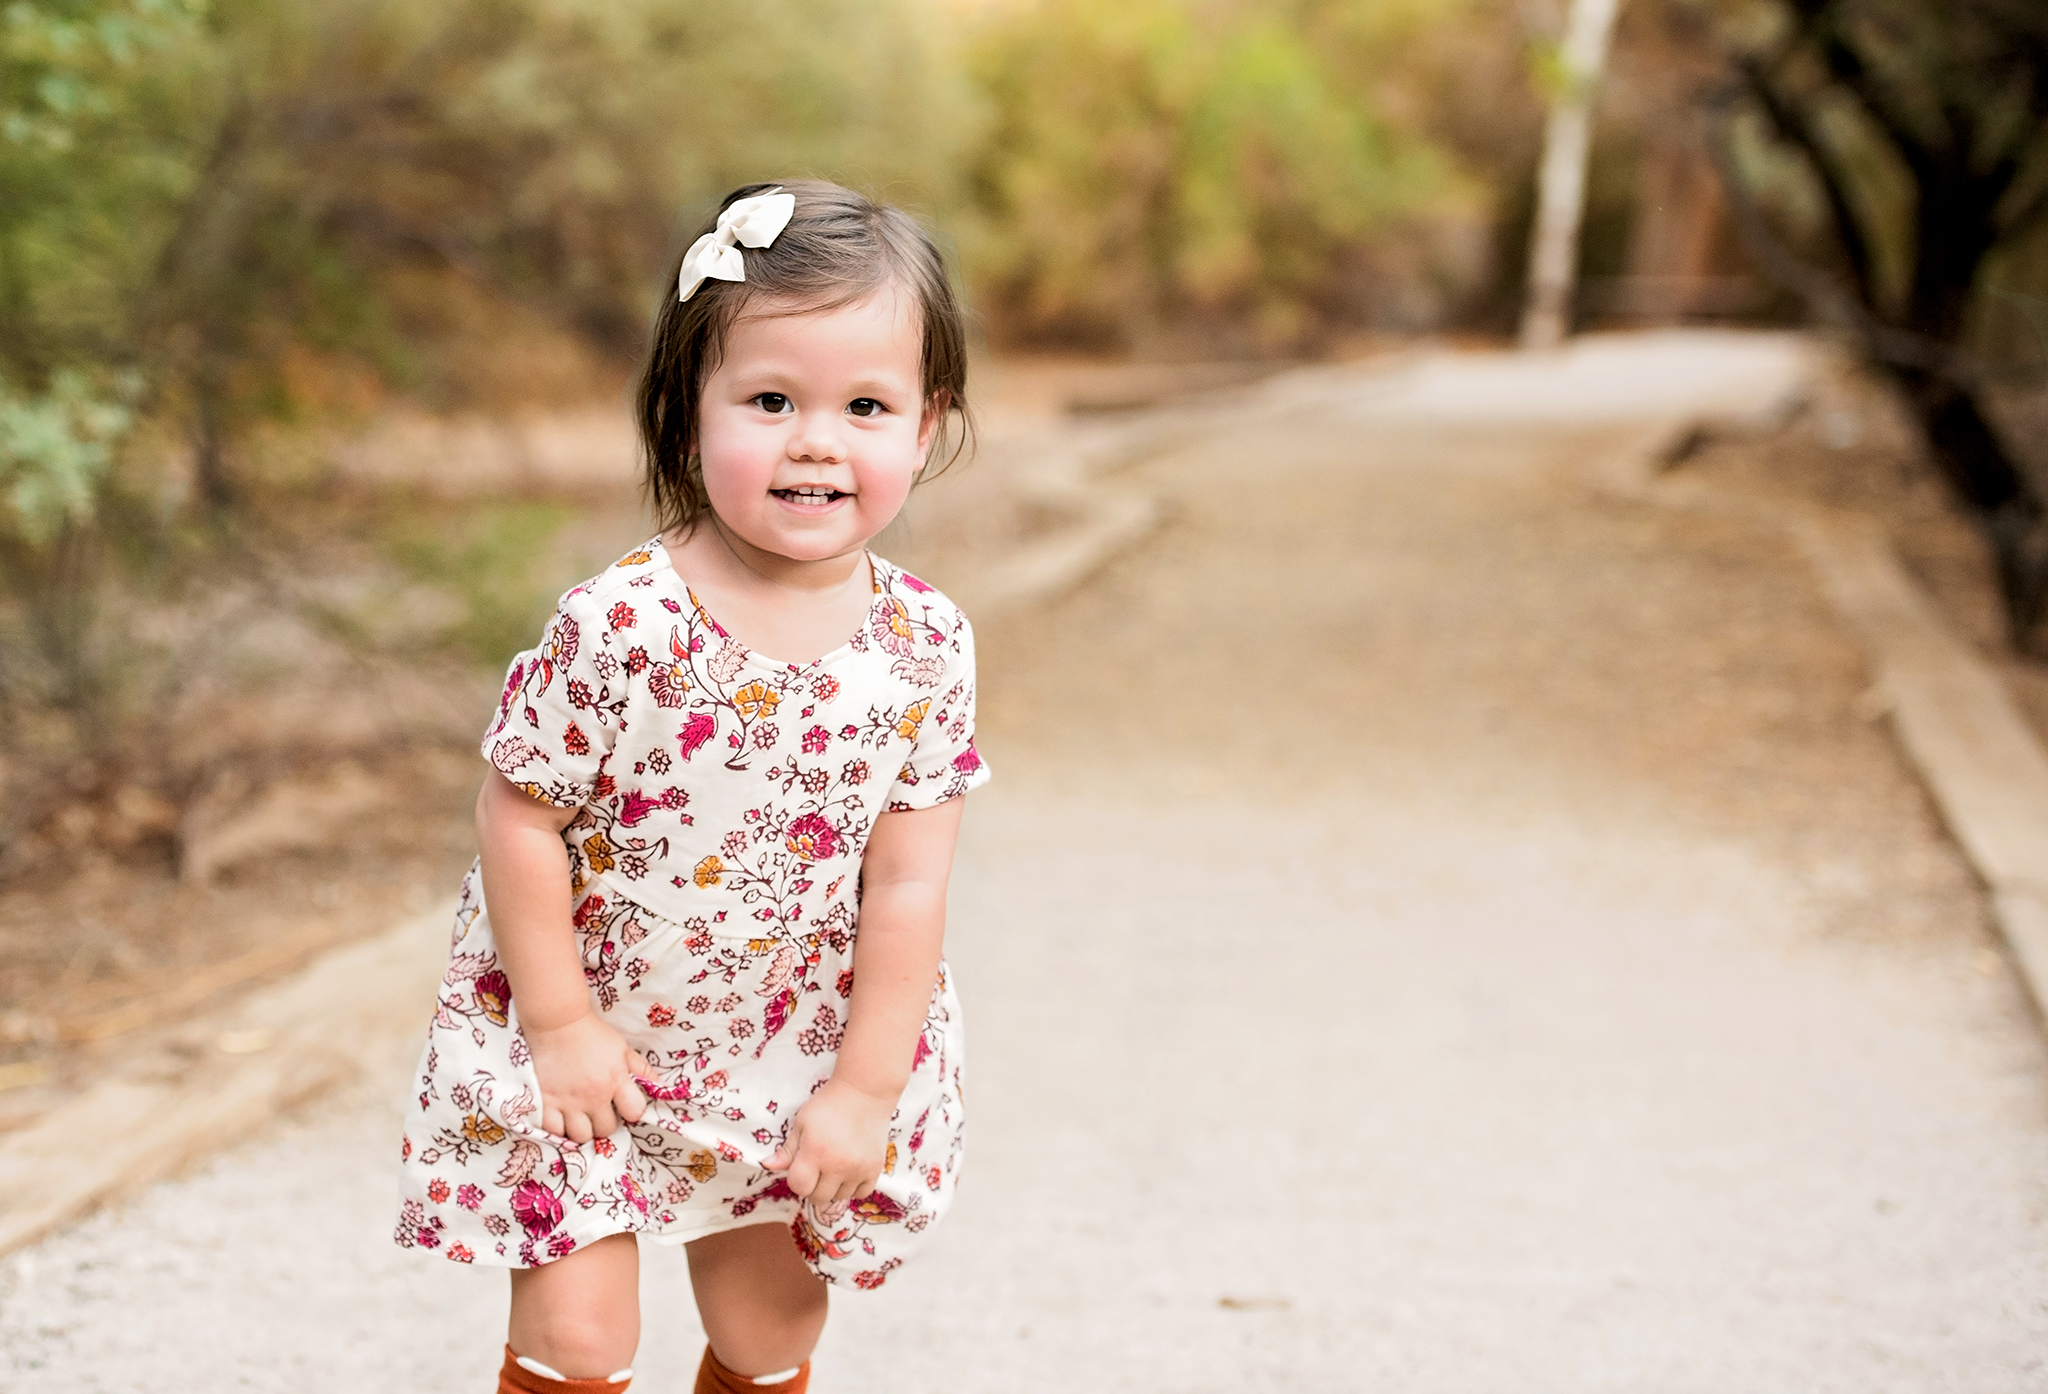 roxy meyer photography - family session